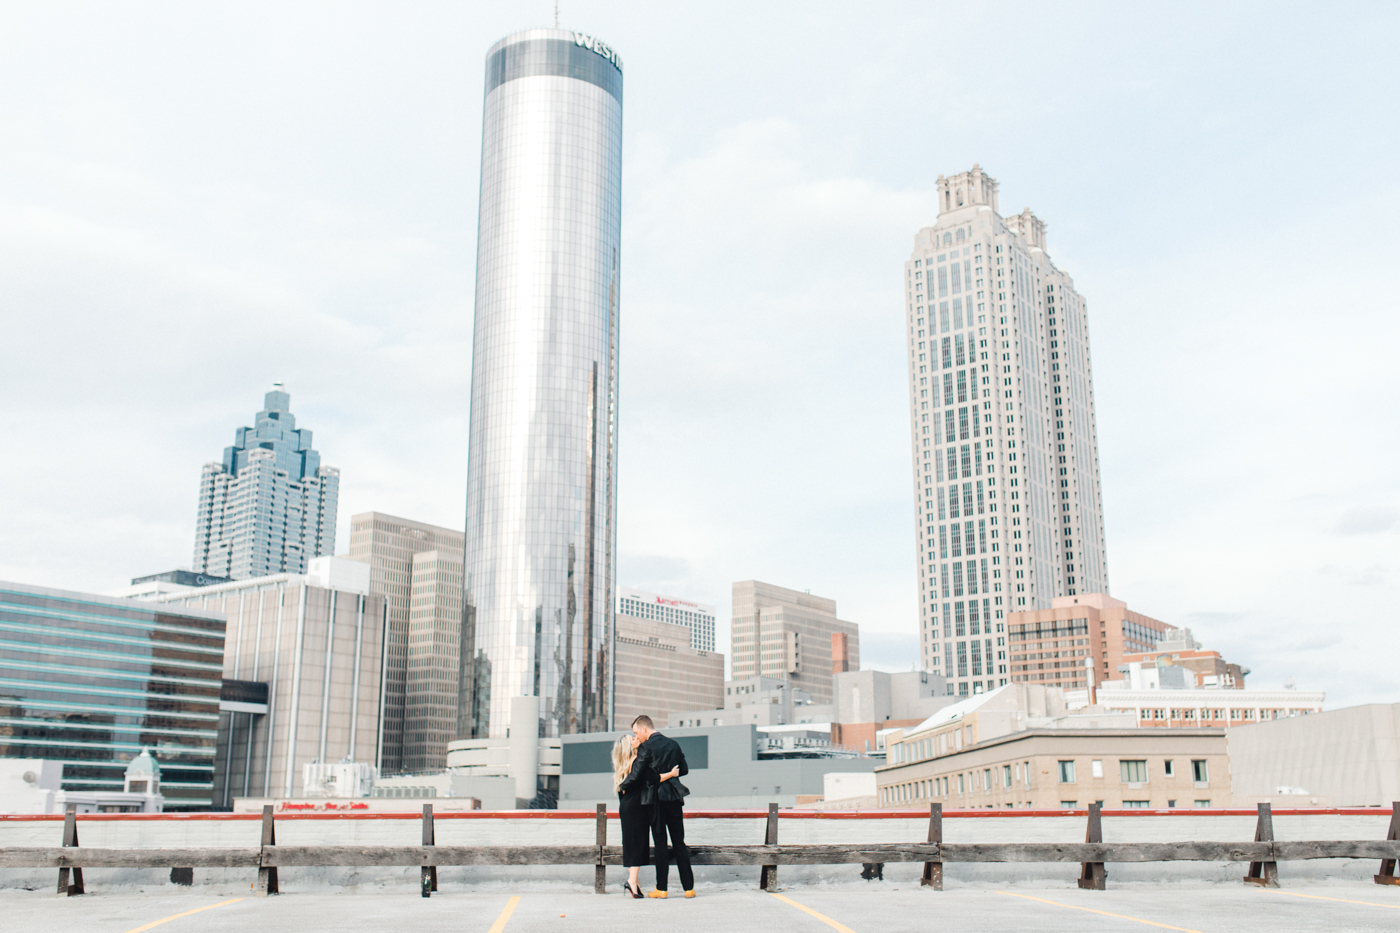 four corners photography best atlanta wedding photographer downtown atlanta engagement session engagement proposal ventanas downtown atlanta wedding atlanta wedding photographer-12.jpg